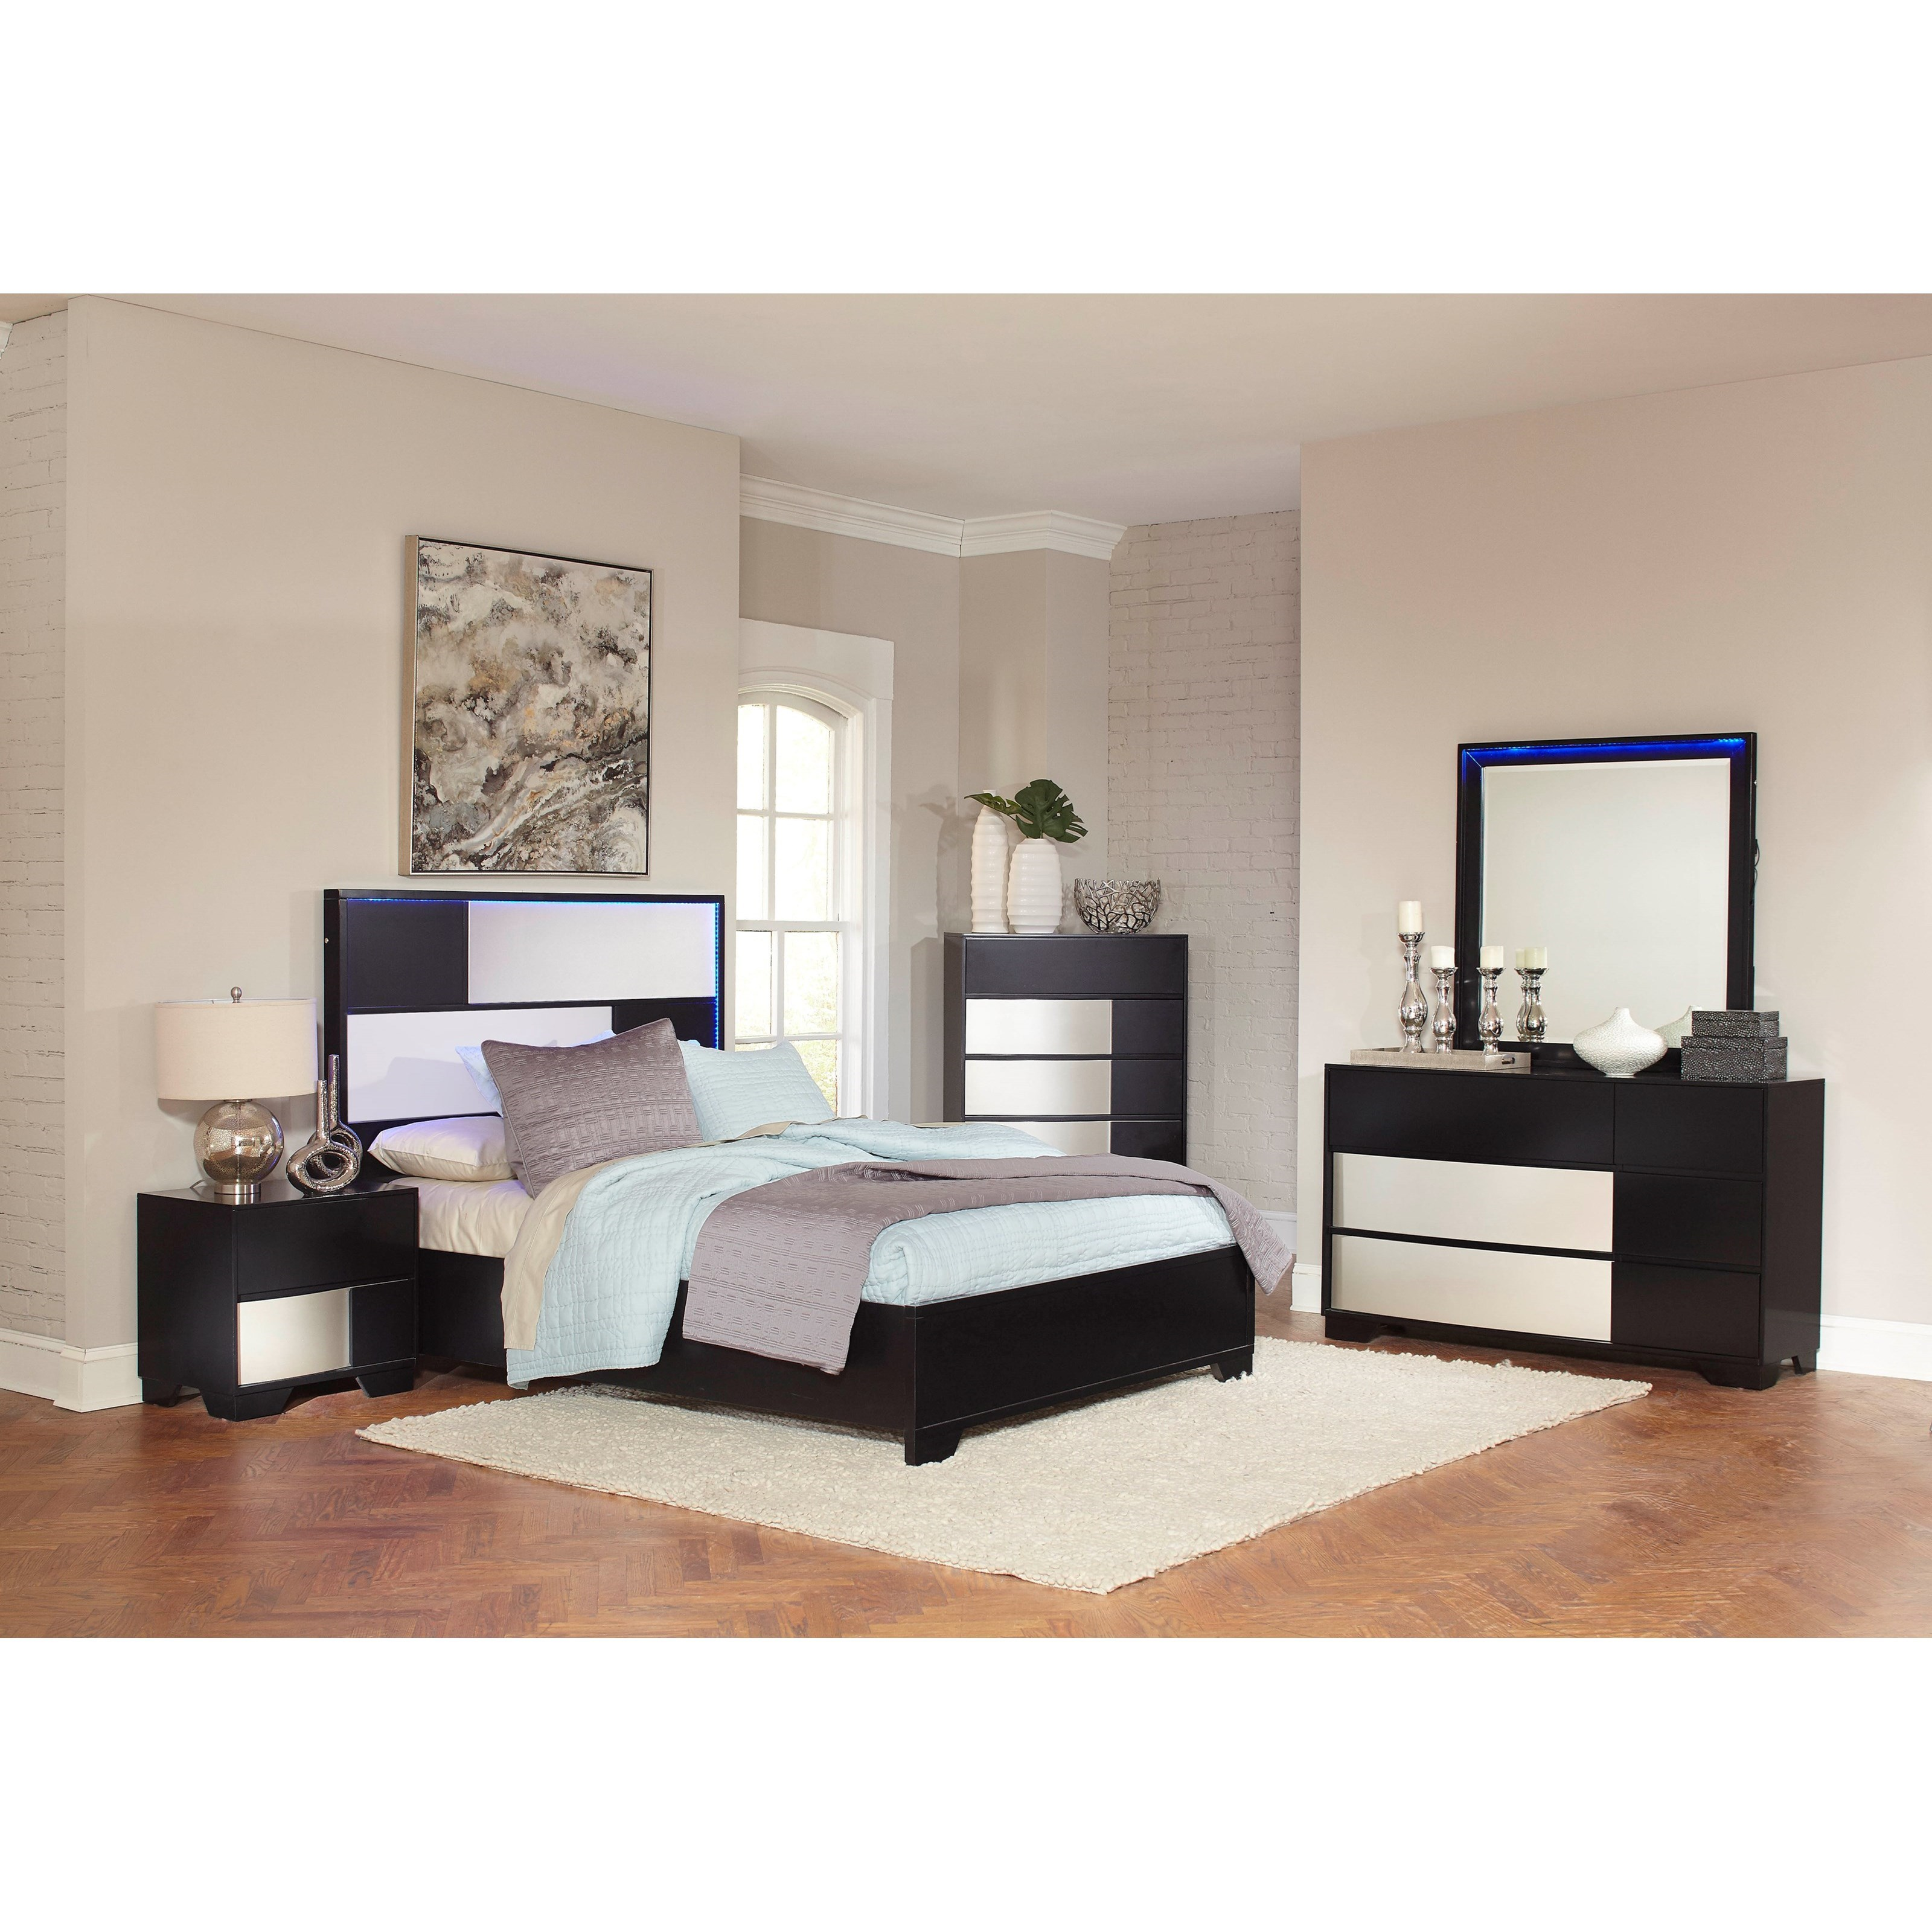 Coaster Havering Queen Bedroom Group - Item Number: 20478 Q Bedroom Group 1